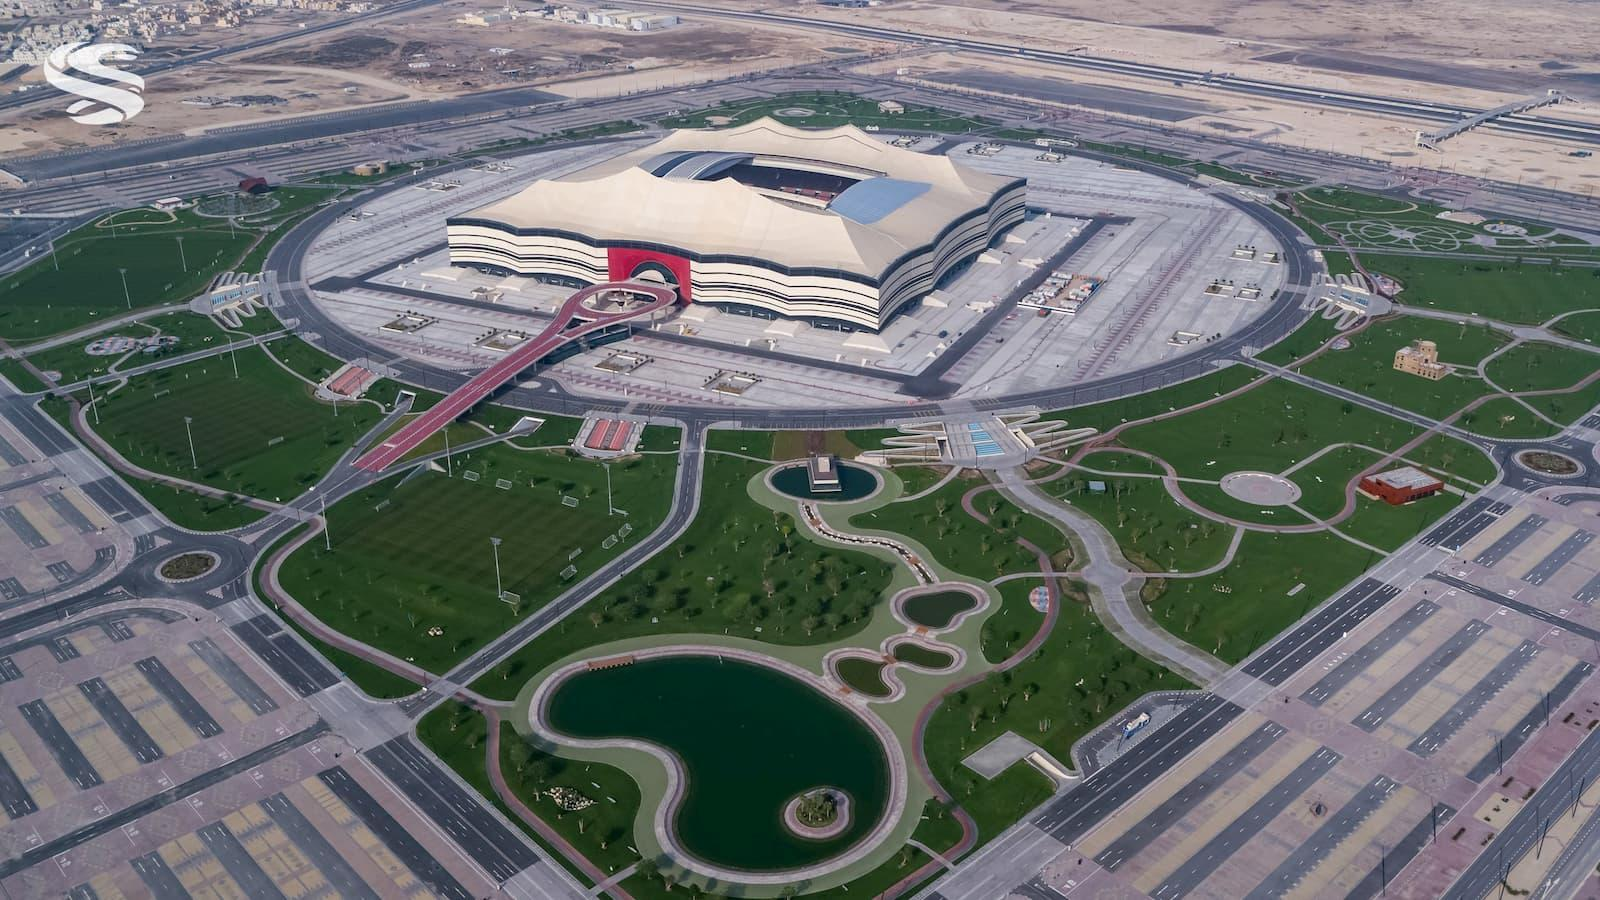 Qatar 2022 organizers discuss green hospitality during inaugural Focus Day event